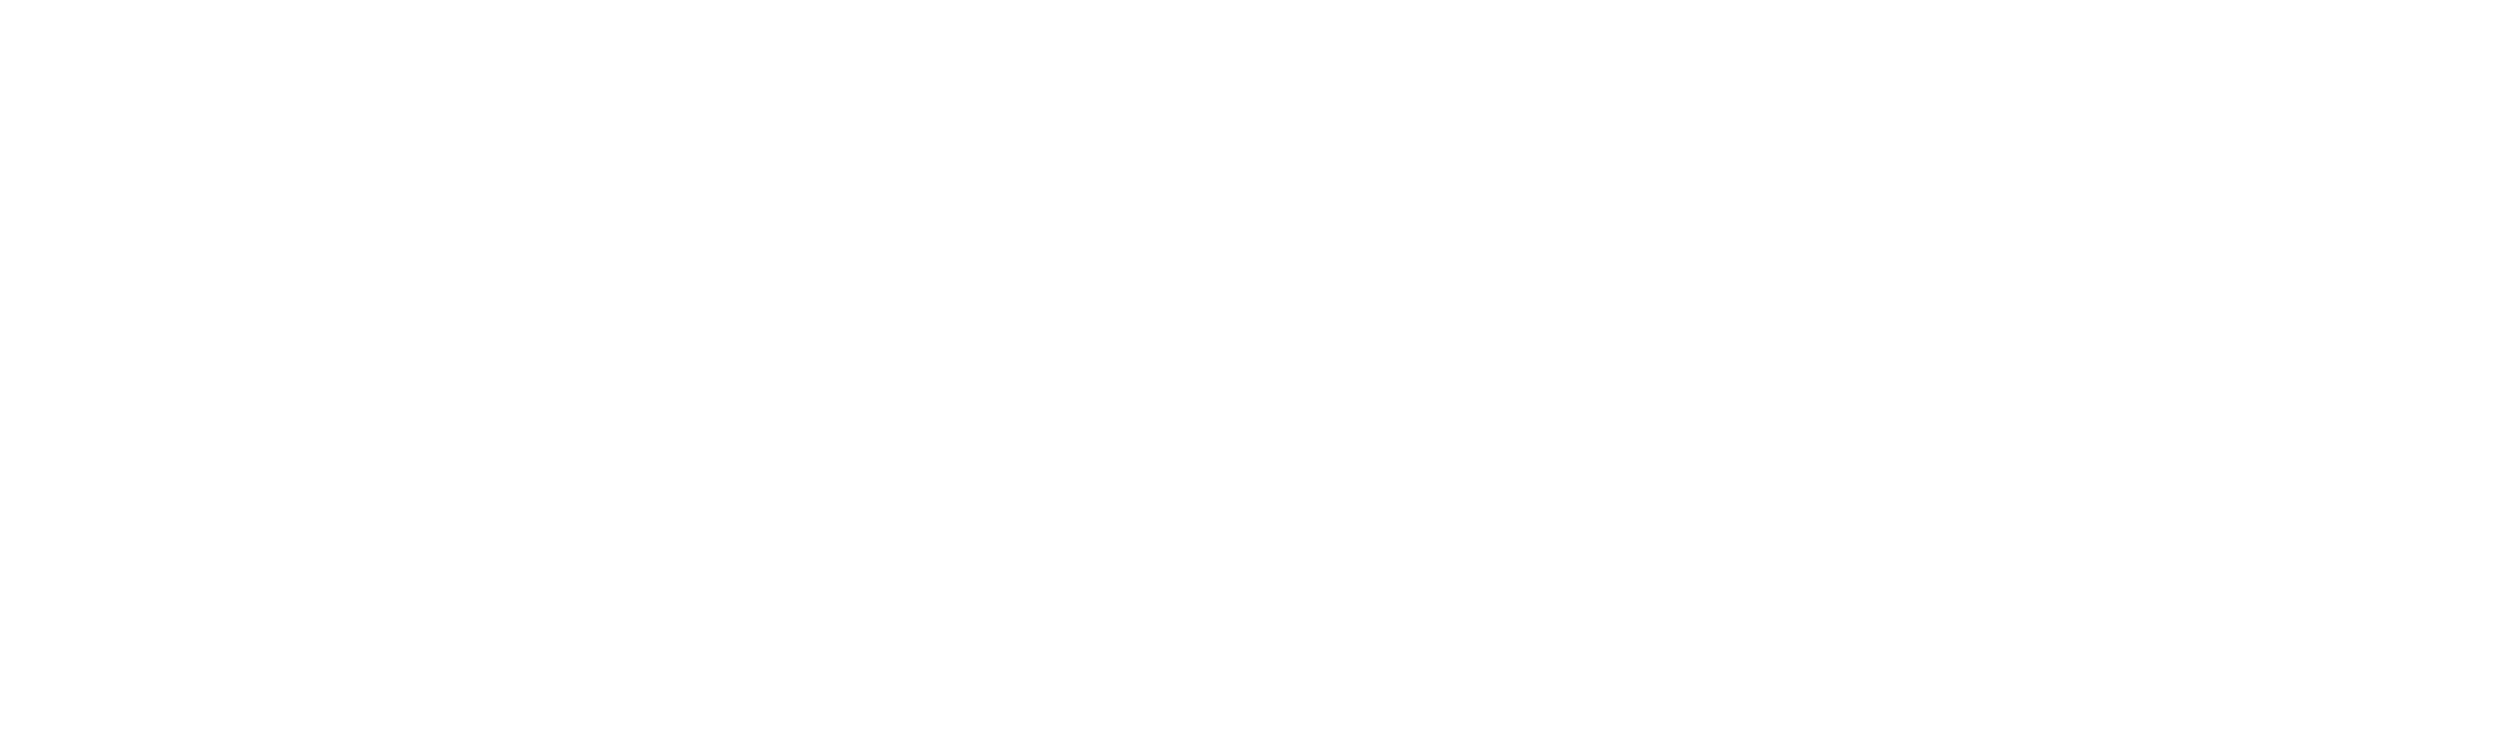 Agencia de Viajes City Travel Tours